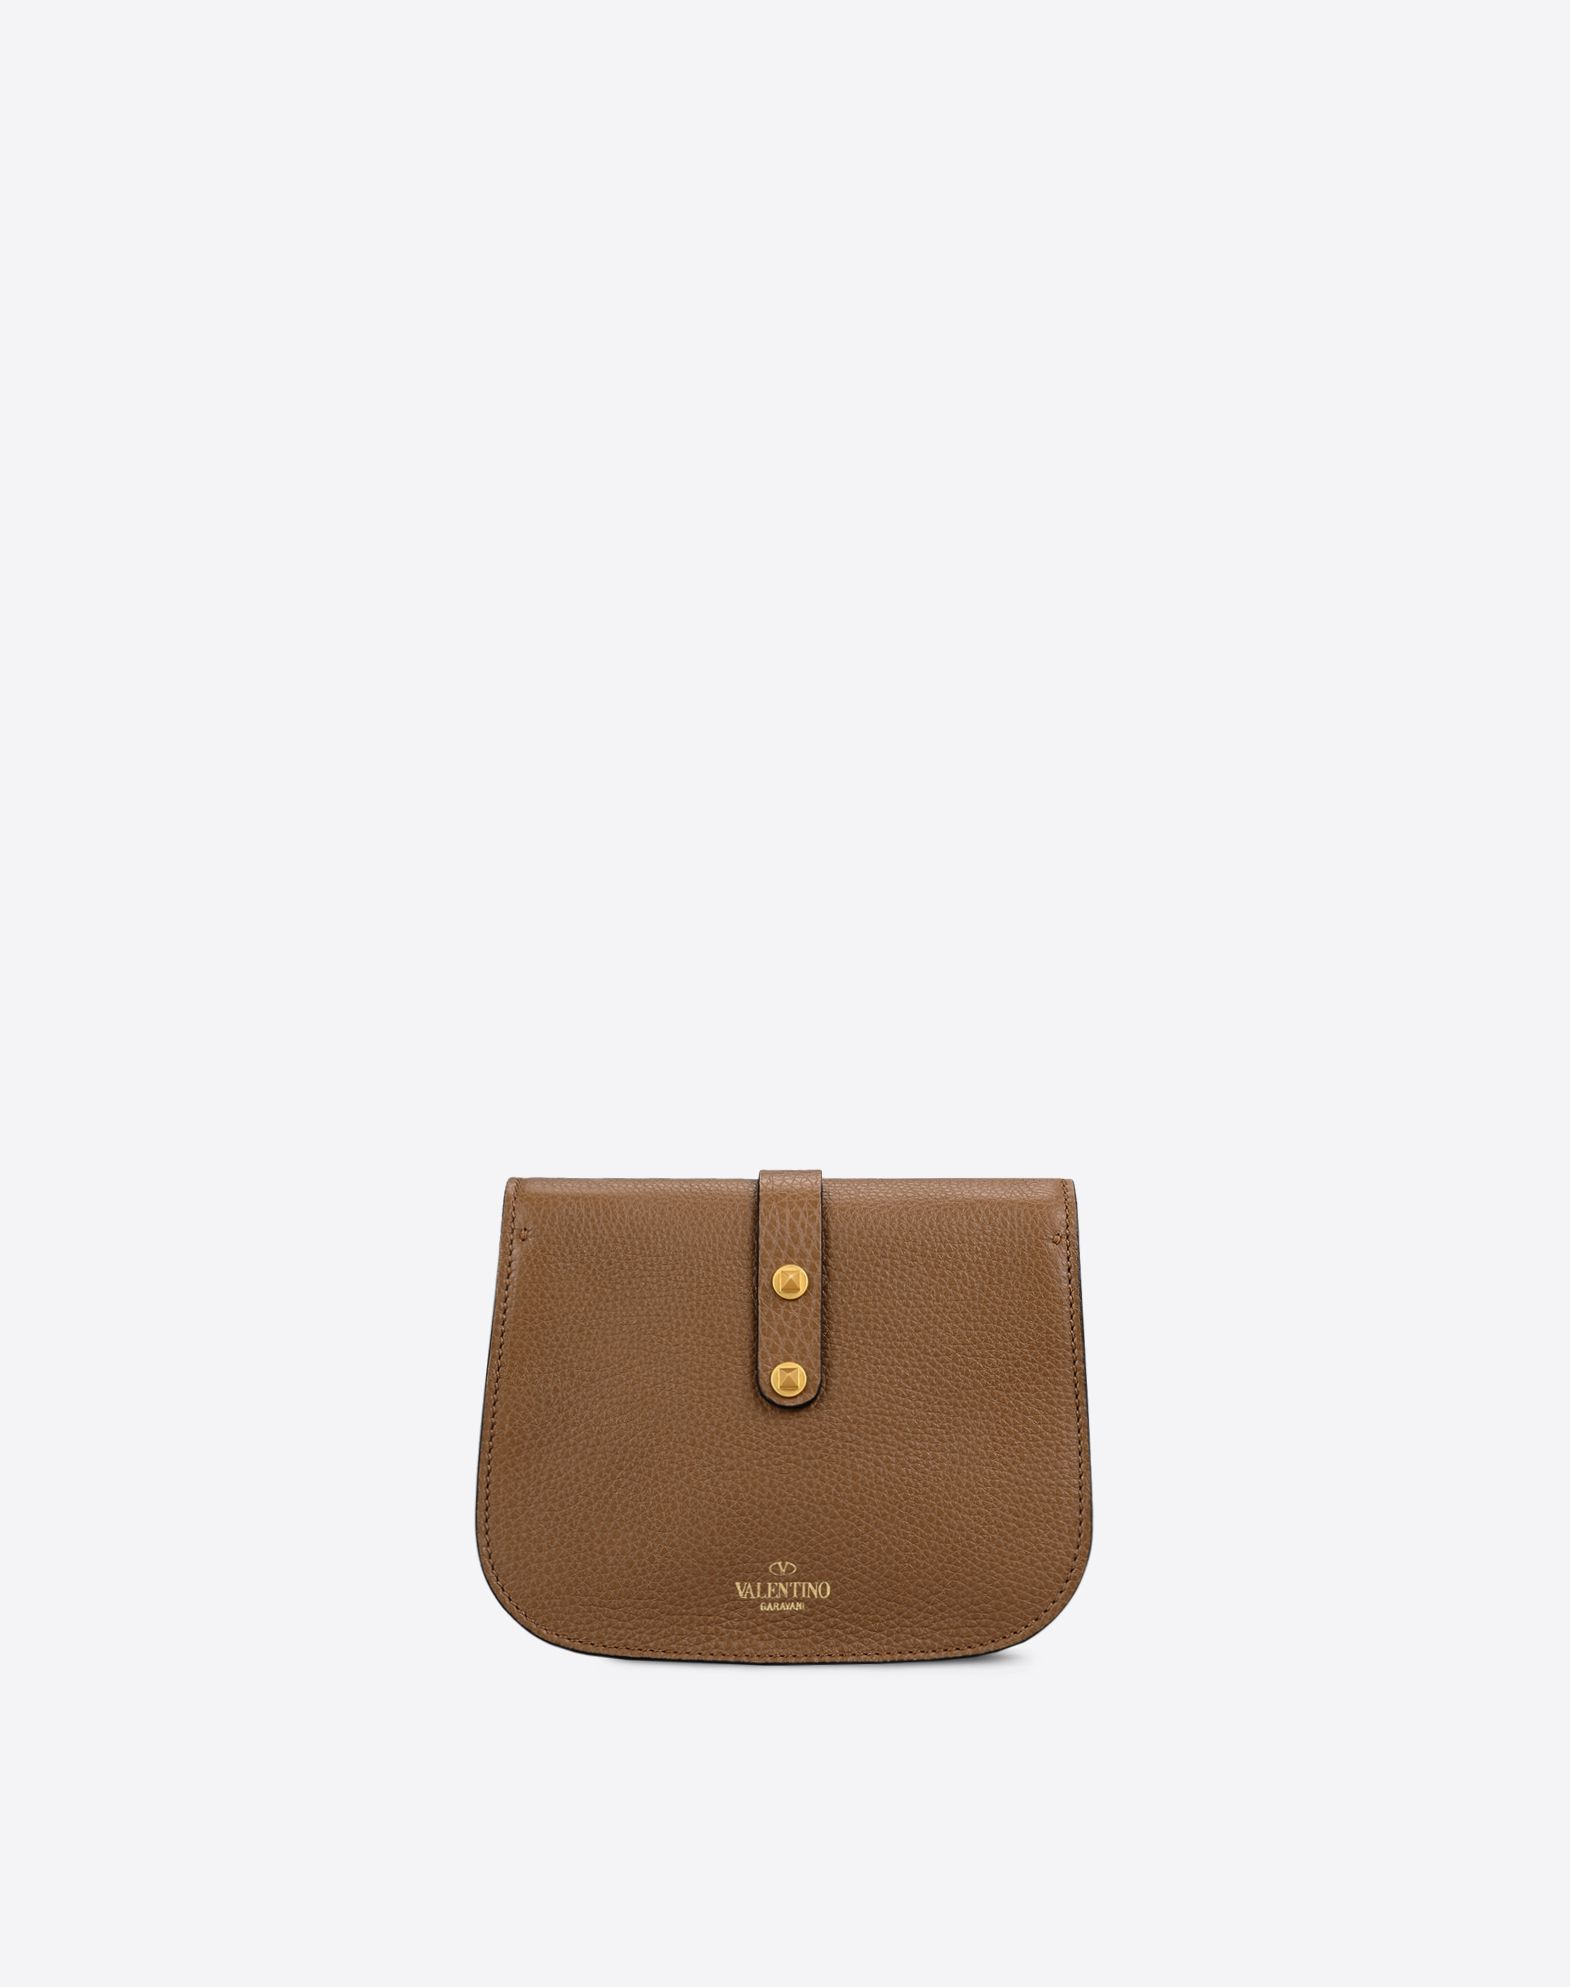 VALENTINO Bag handle Logo detail Solid color Magnetic closure Leather lining  45279721pt